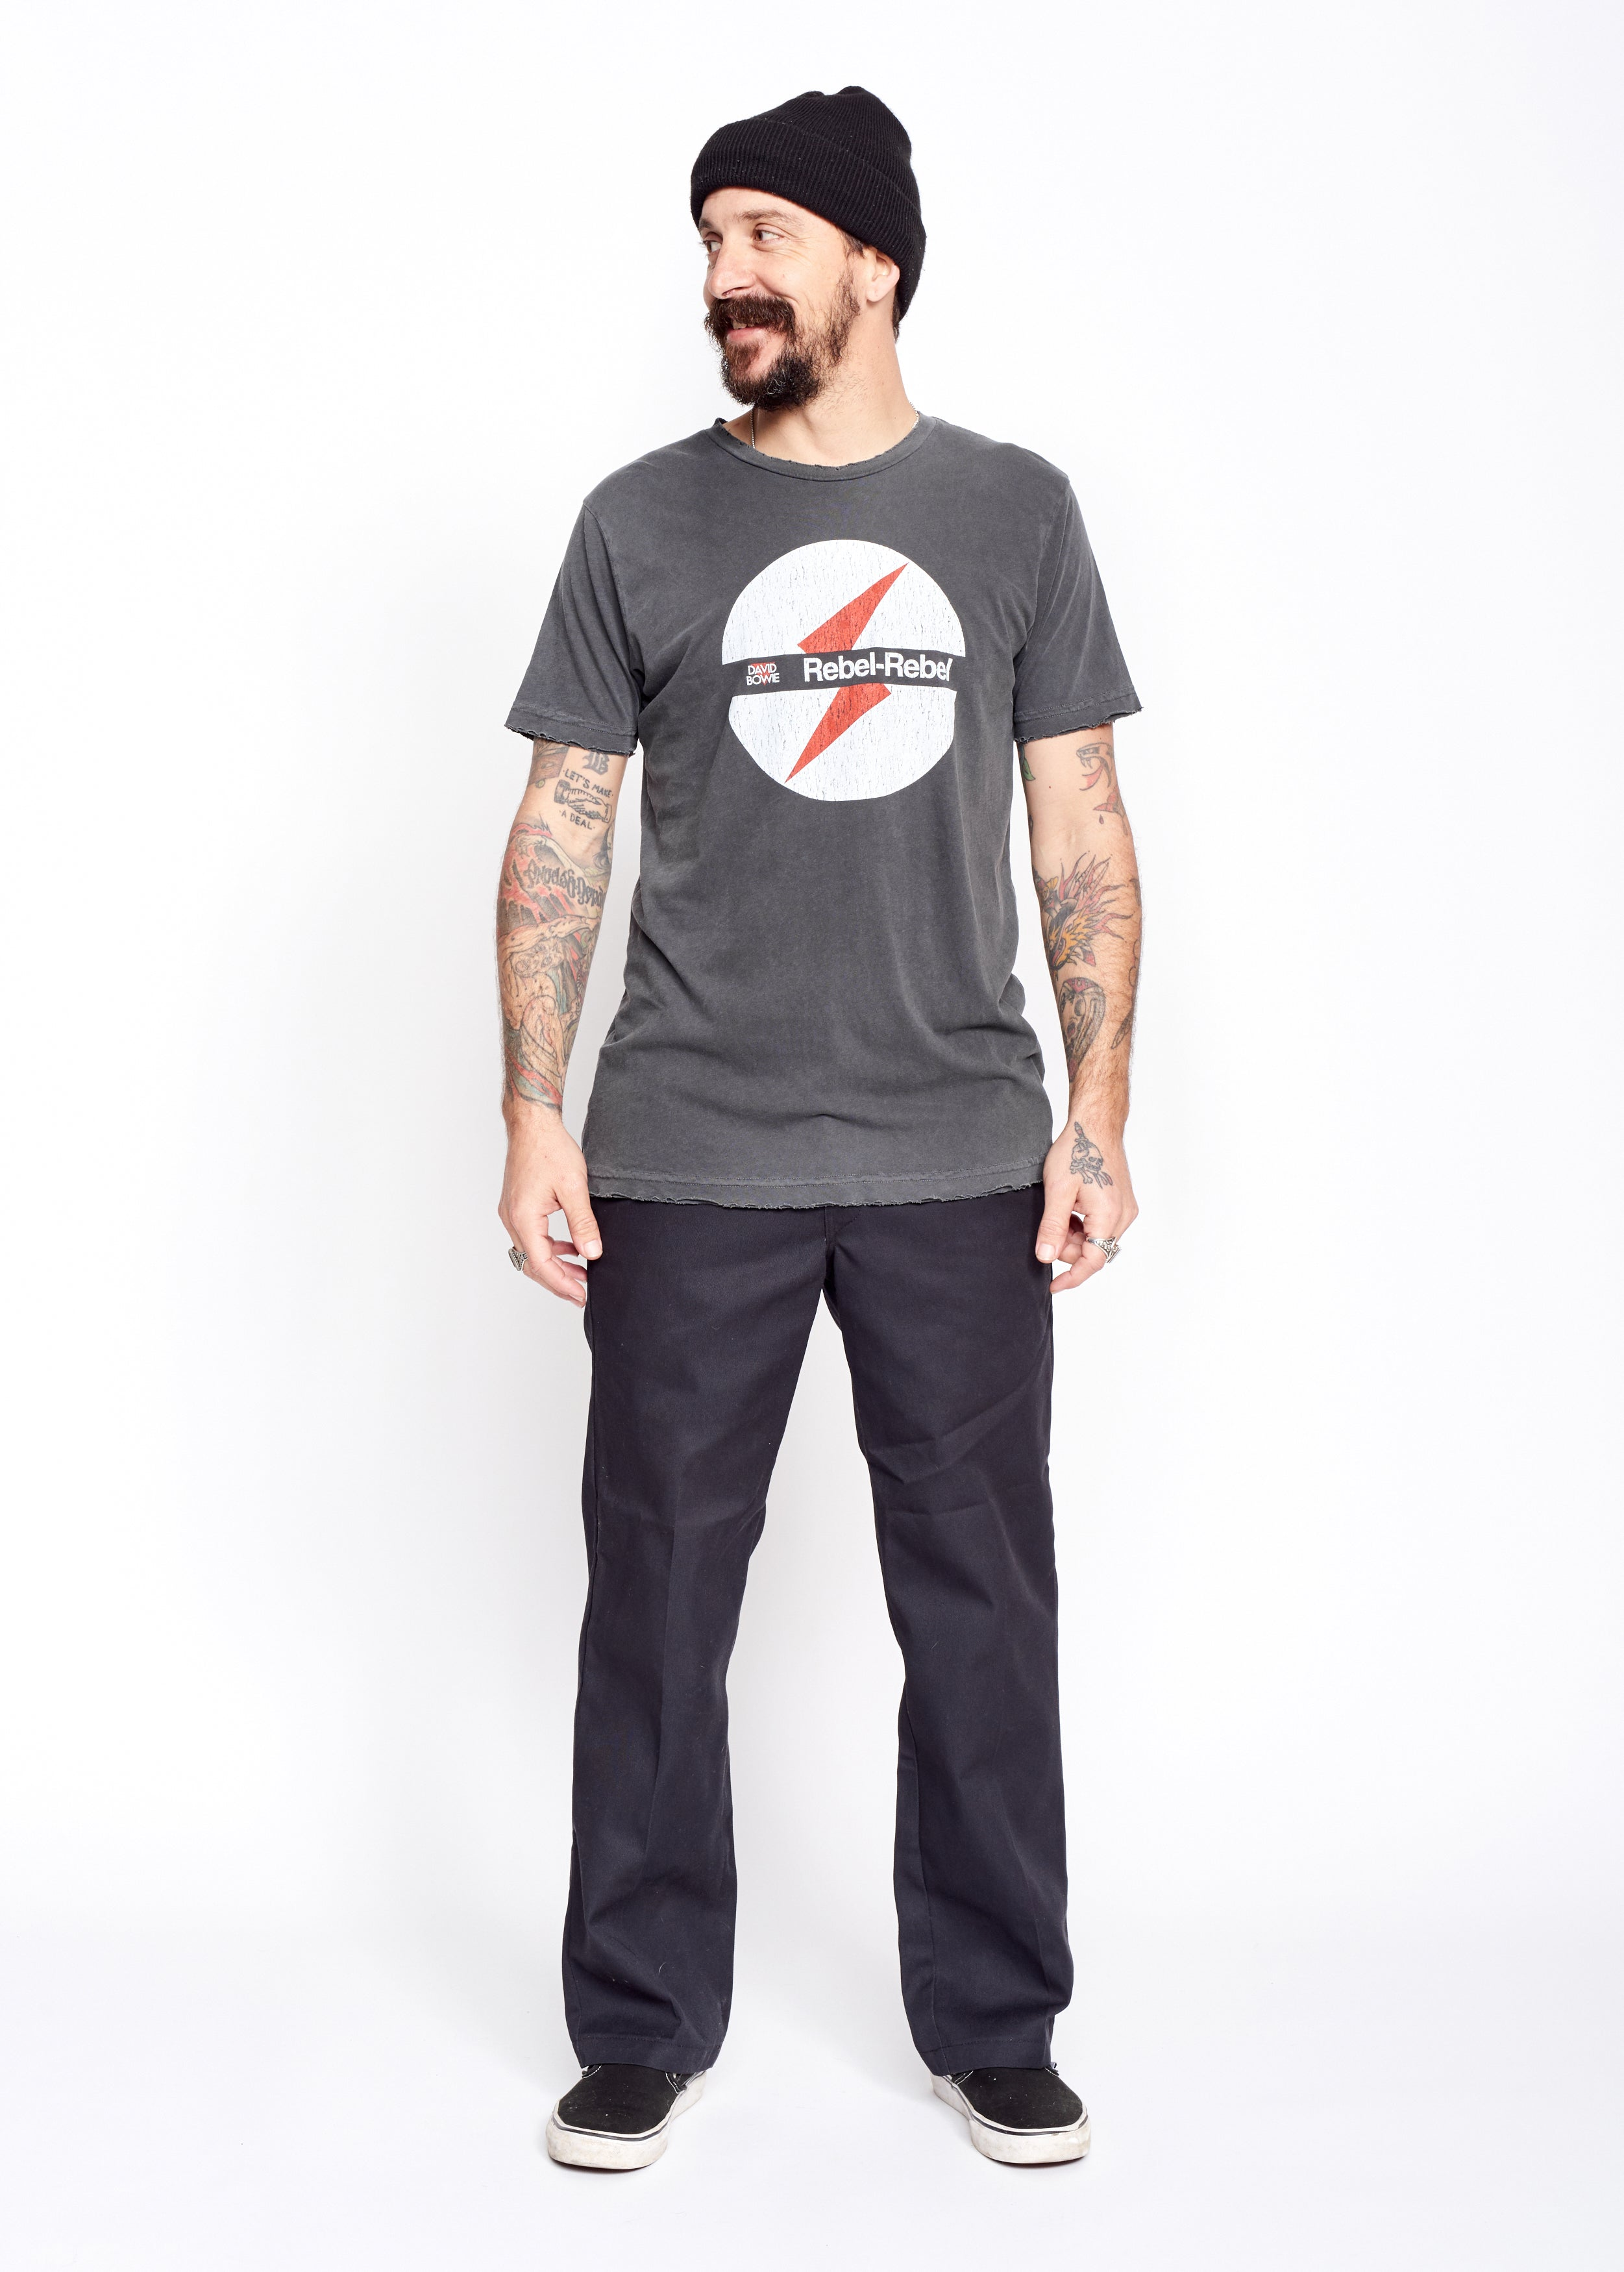 Rebel Rebel Men's Crew - Men's Tee Shirt - Midnight Rider